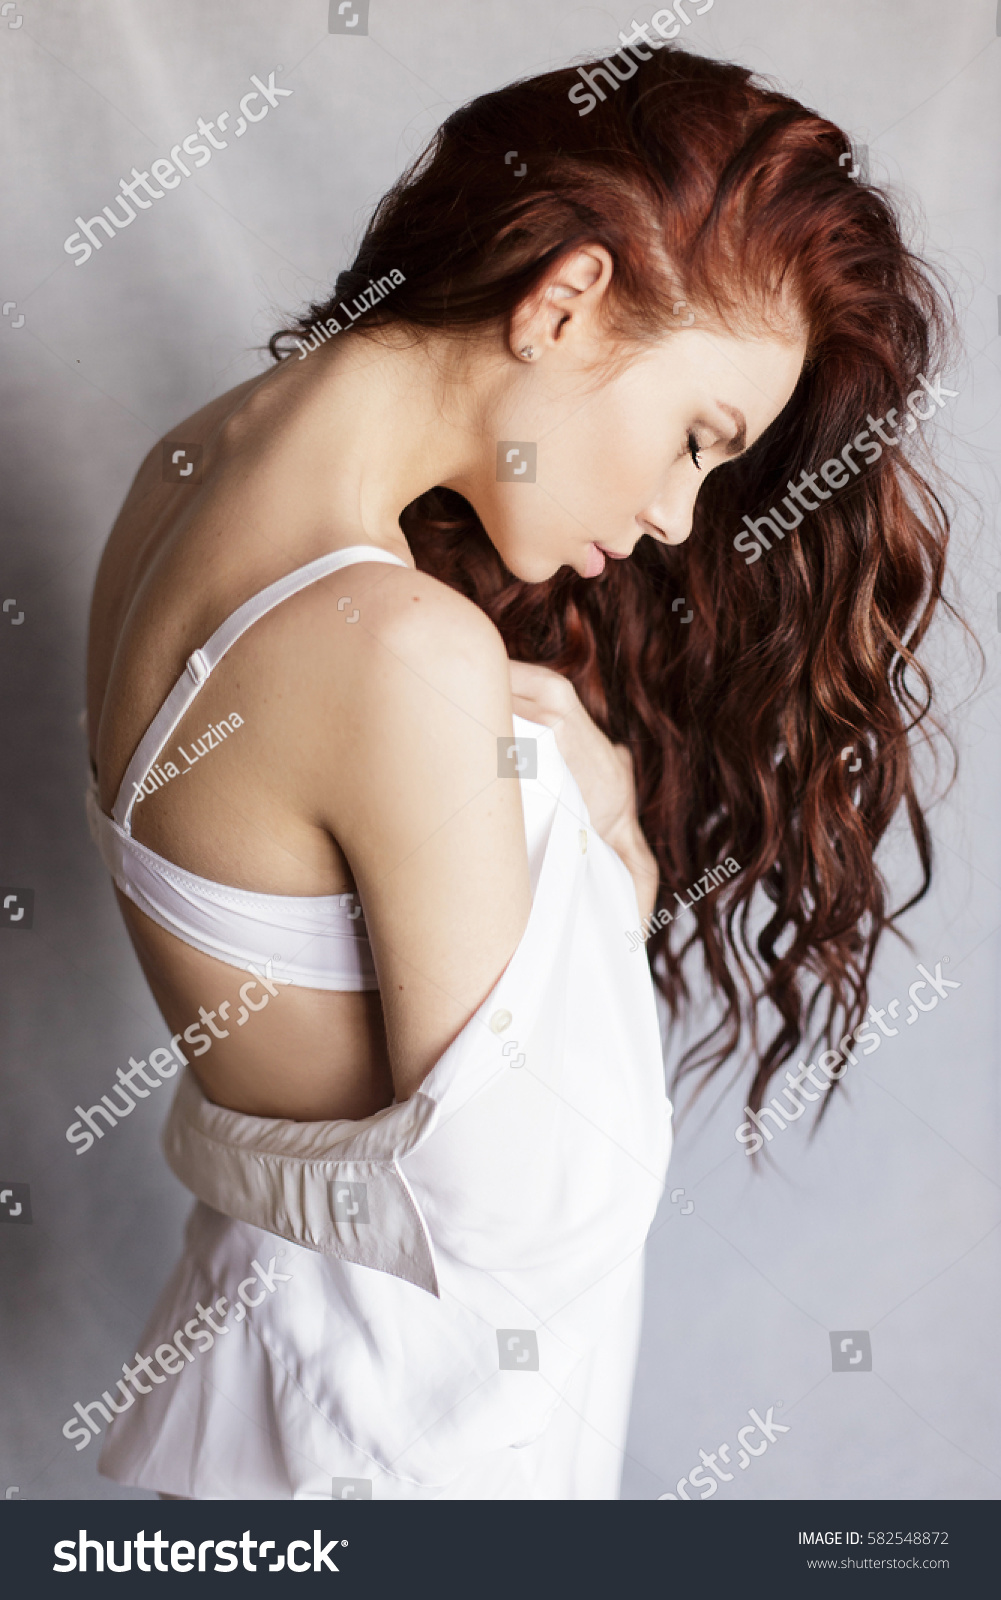 Curly redhead girl nude confirm